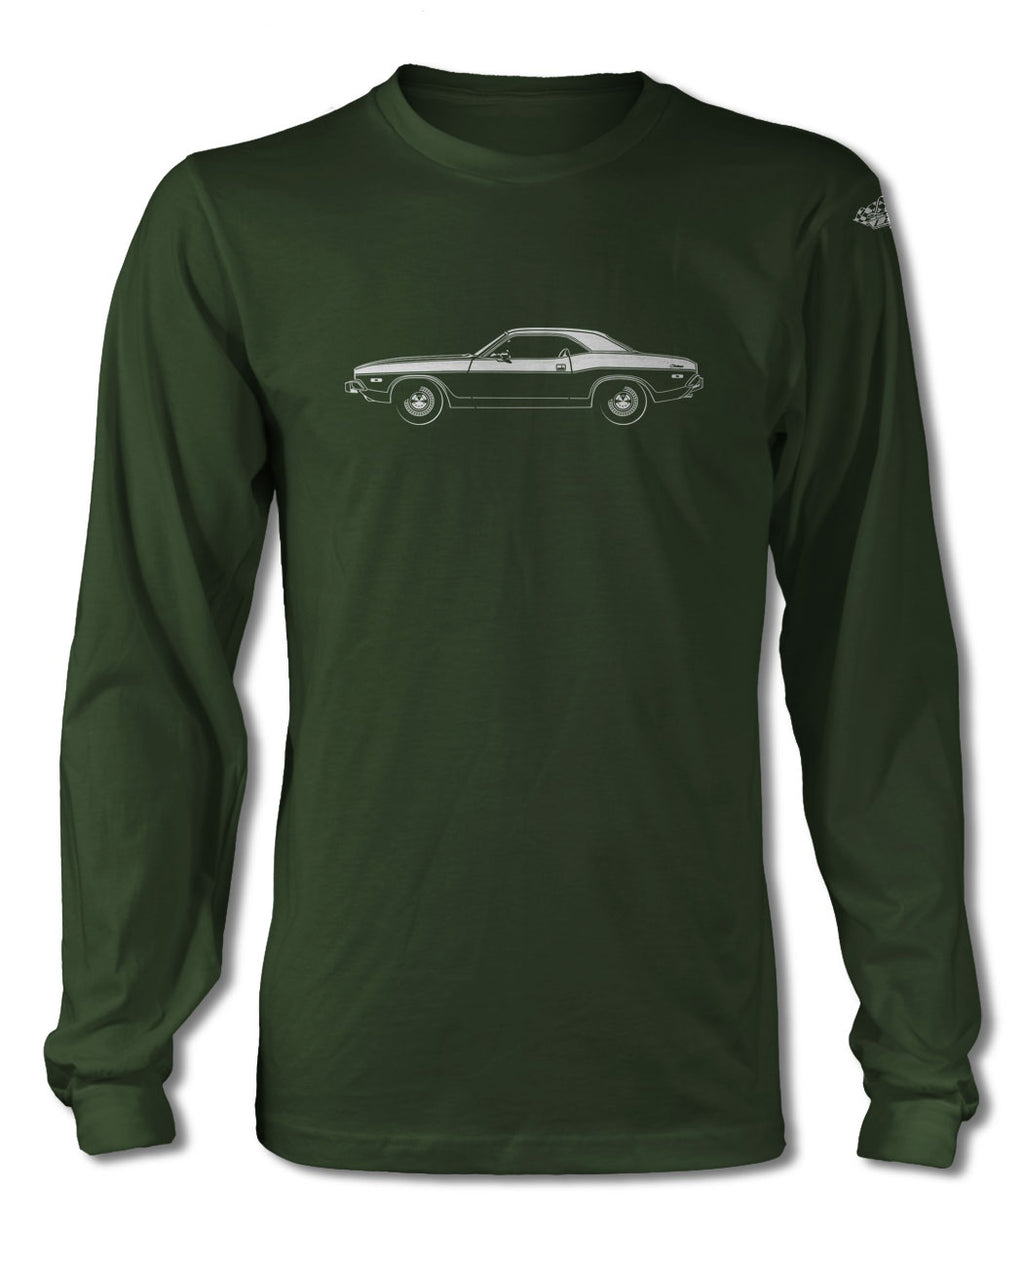 1973 Dodge Challenger Base Hardtop T-Shirt - Long Sleeves - Side View